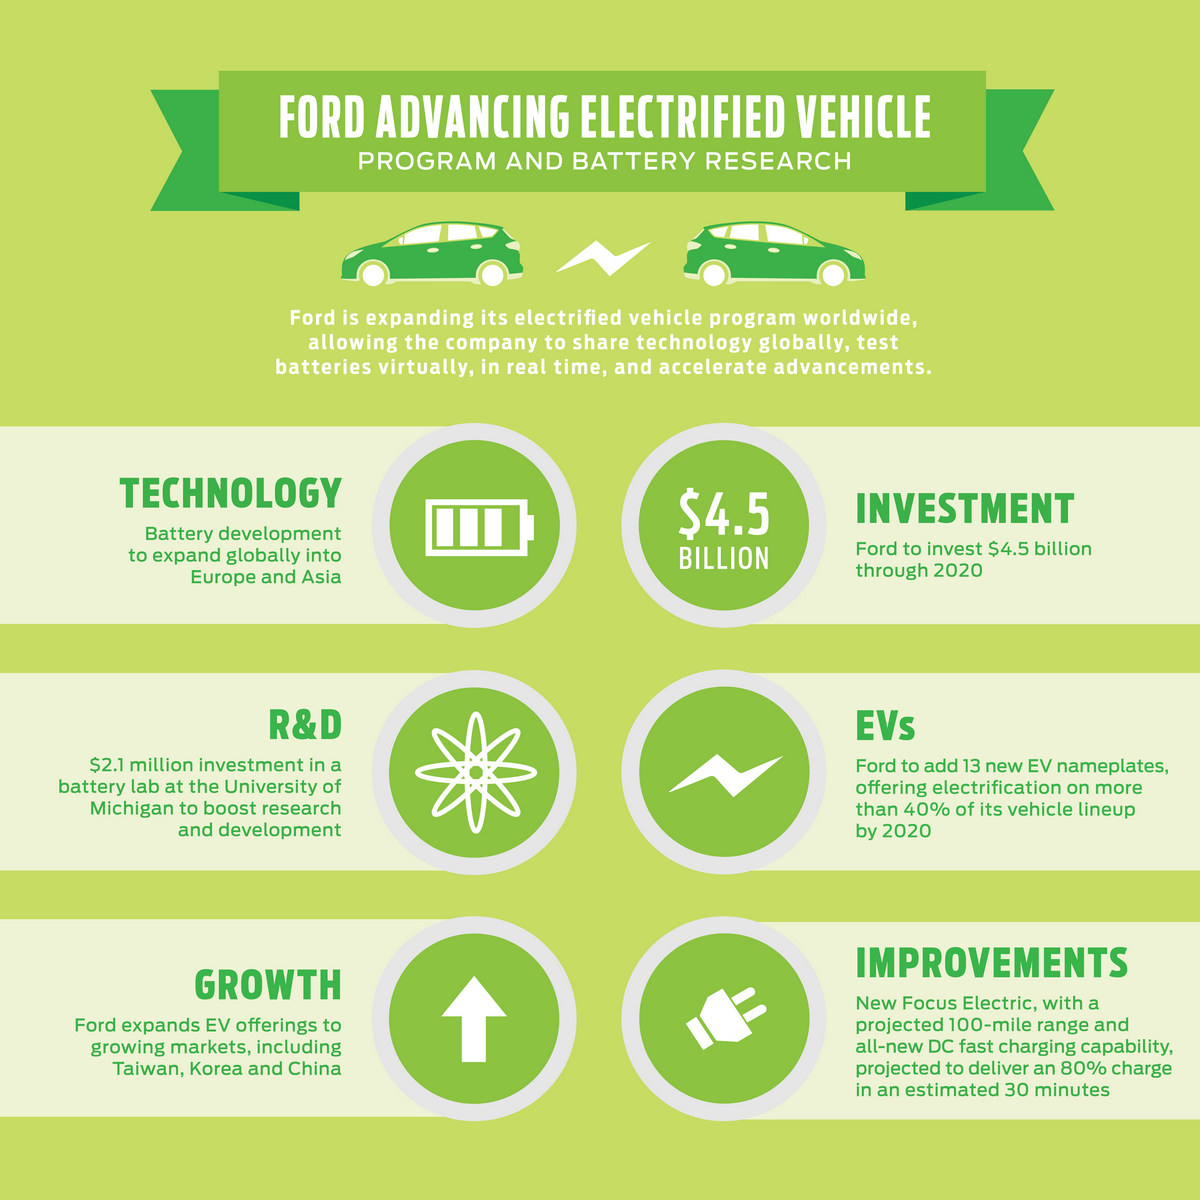 Ford Investing $4.5 Billion in Electrified Vehicle Solutions © Ford Motor Company